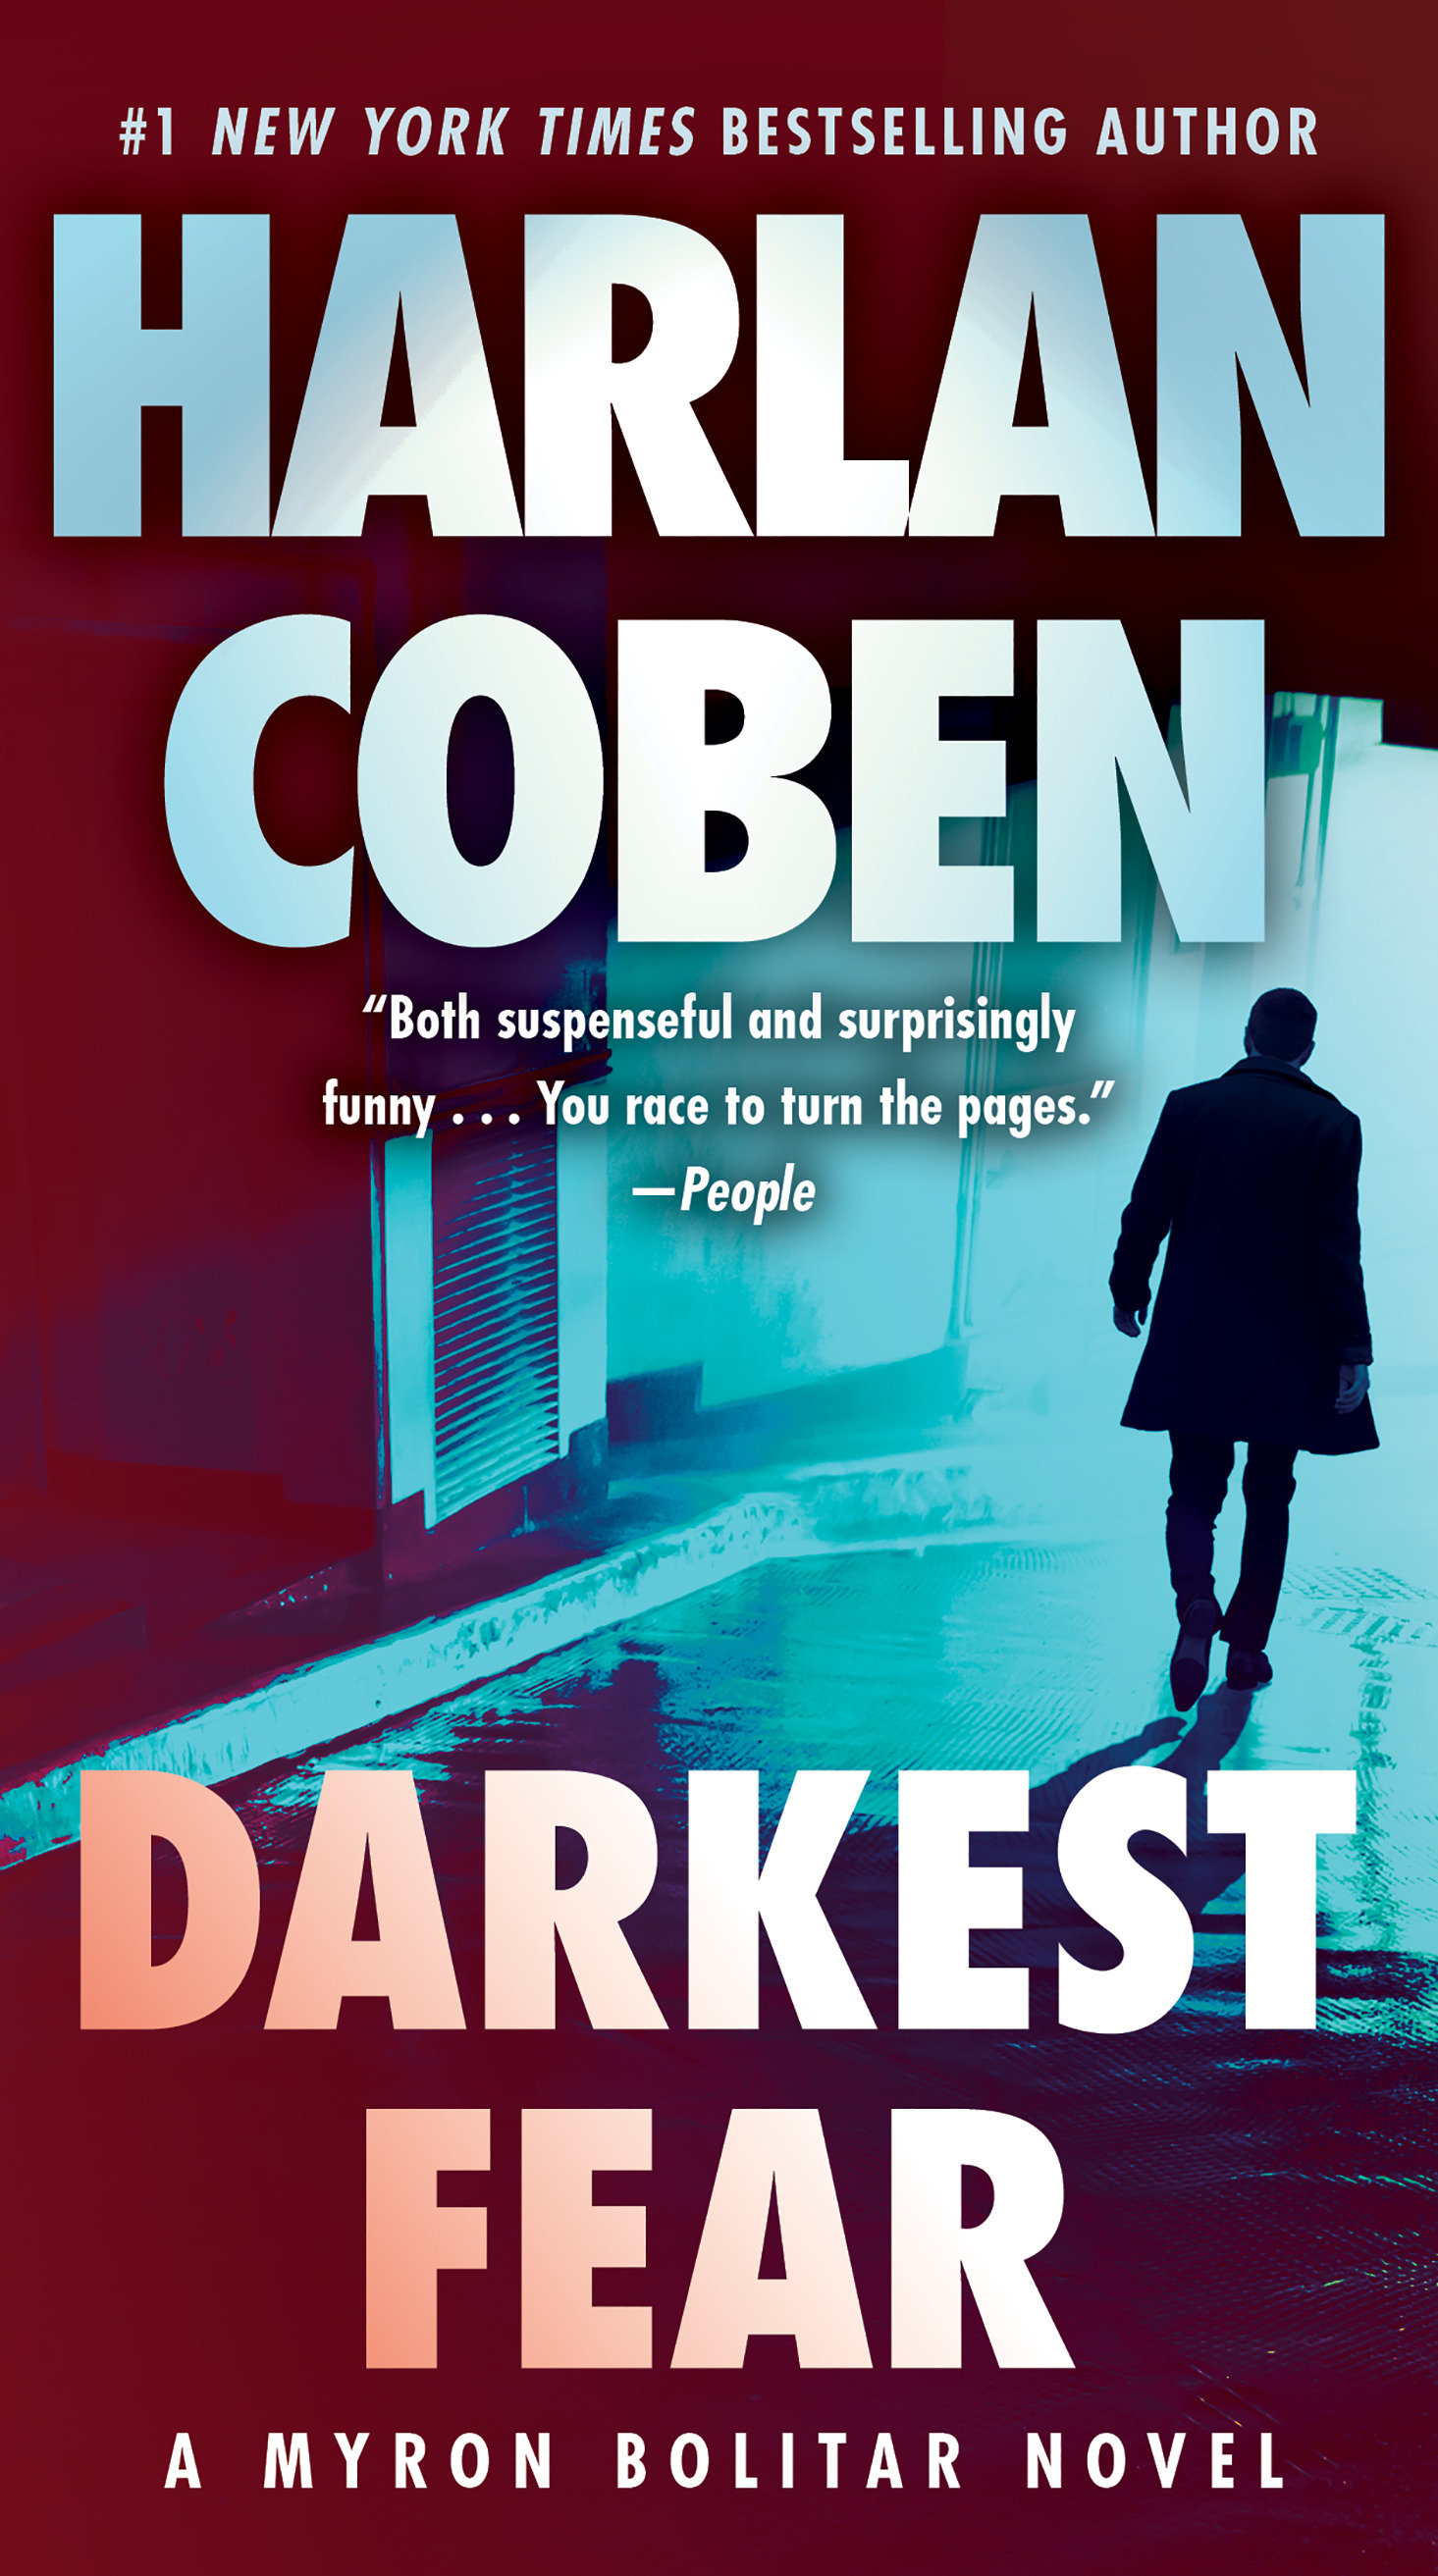 Darkest fear cover image